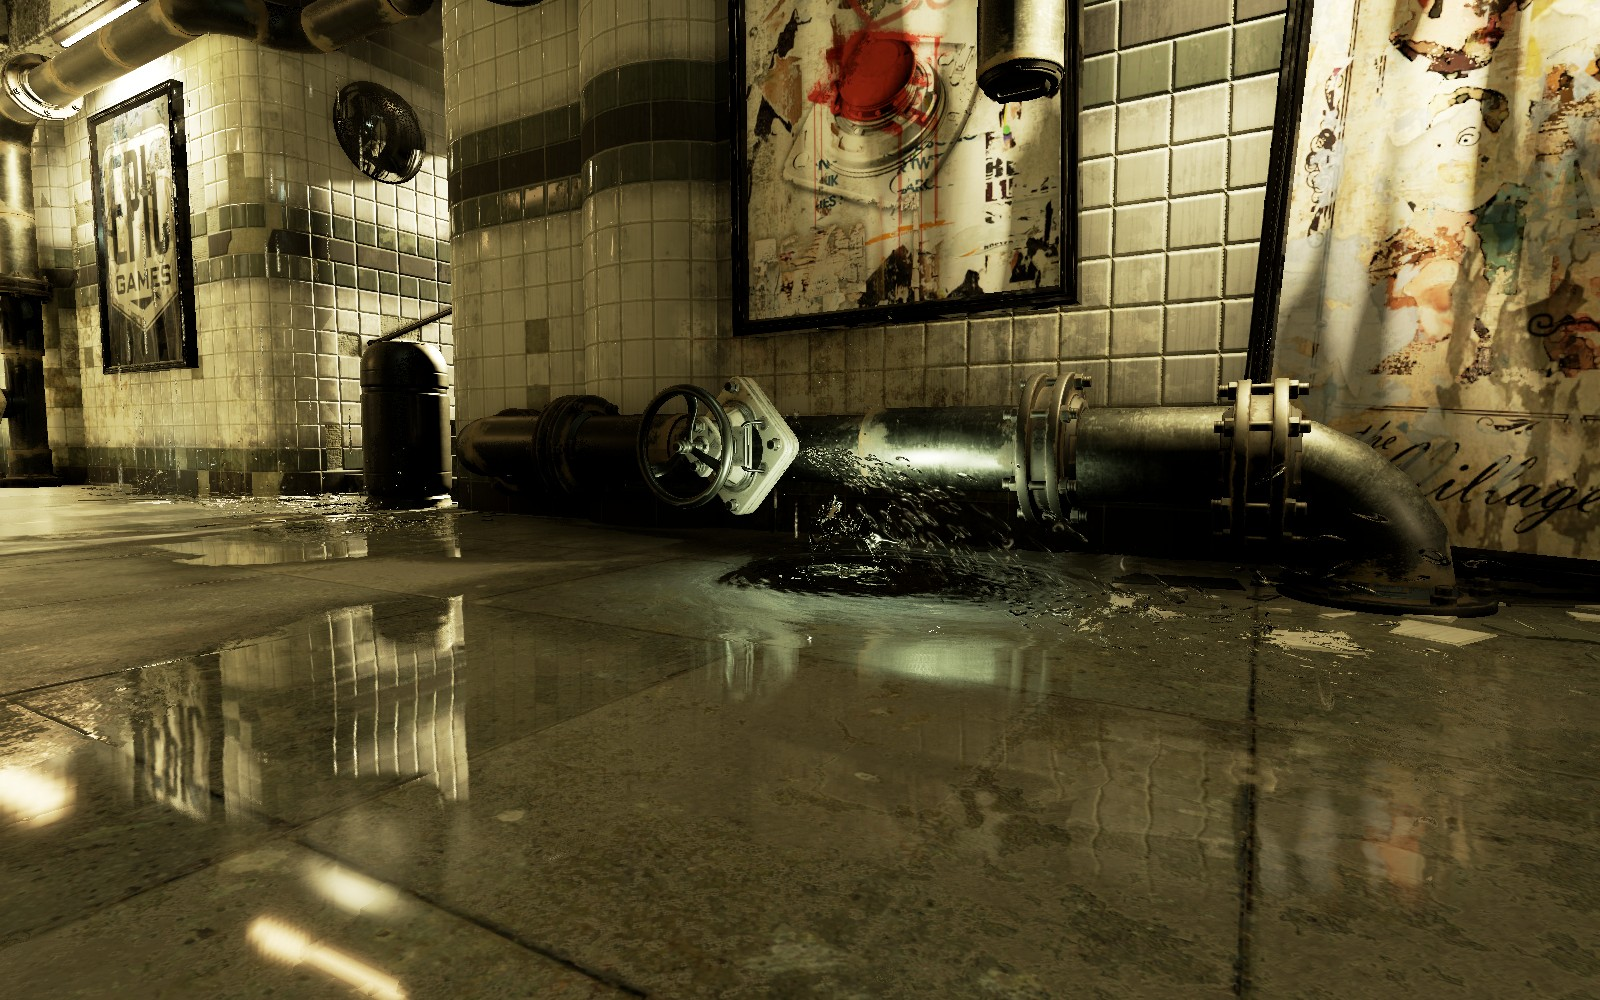 Image 4 - Unreal Engine 4: Reflections Showcase Demo mod for Unreal